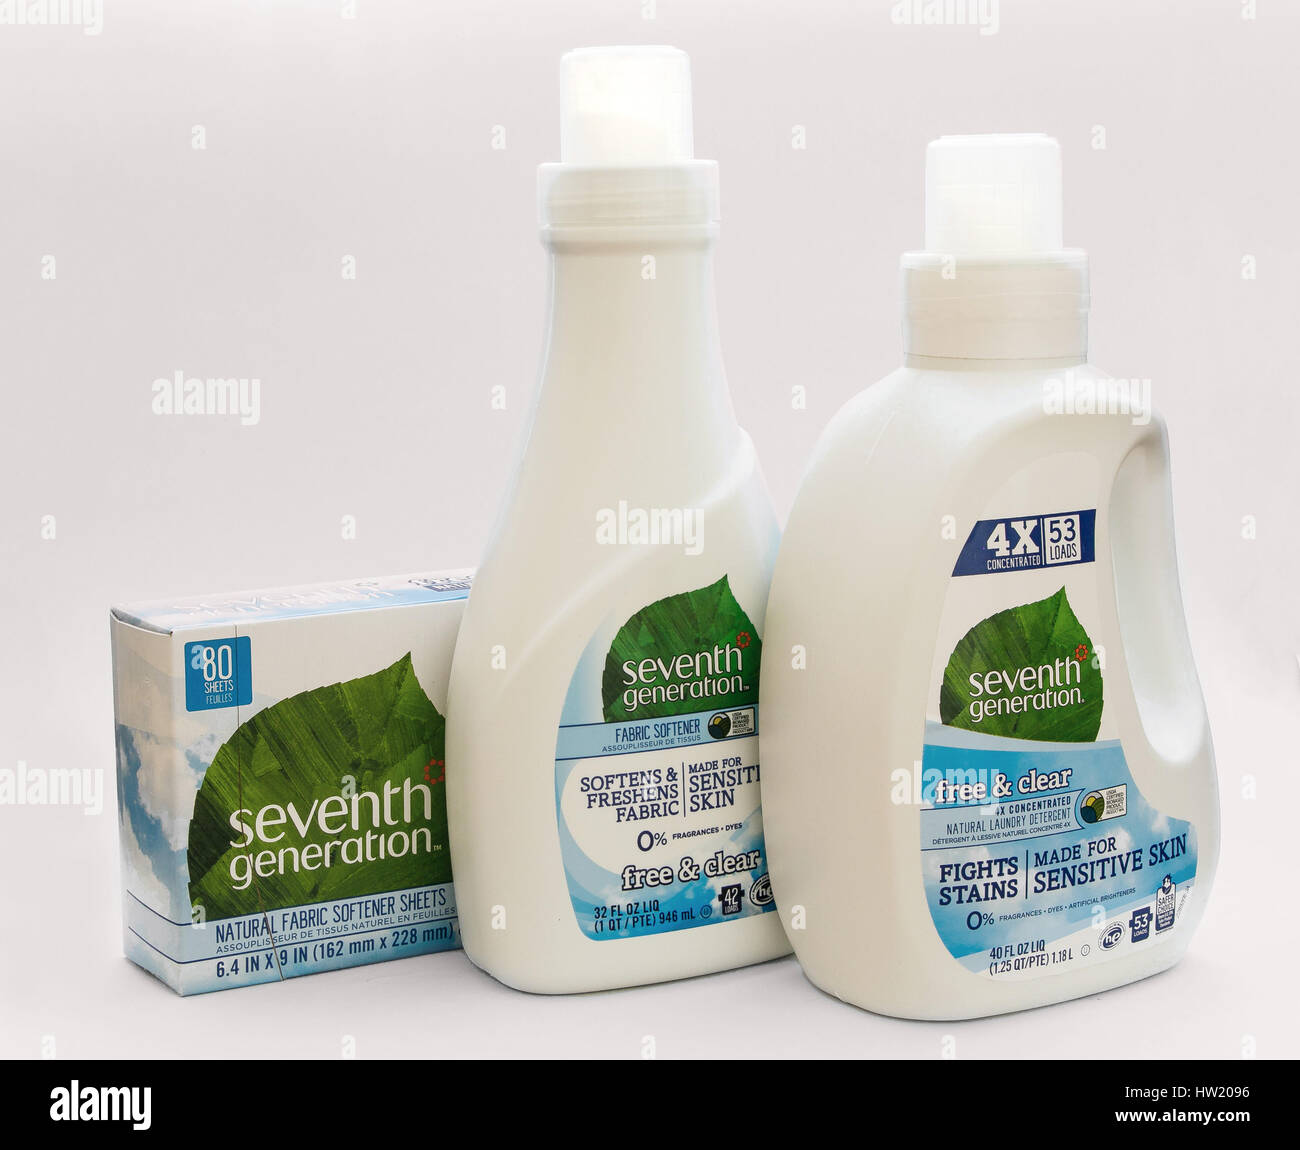 A set of Seventh Generation laundry detergent, fabric softener liquid and sheets for the dryer. Stock Photo